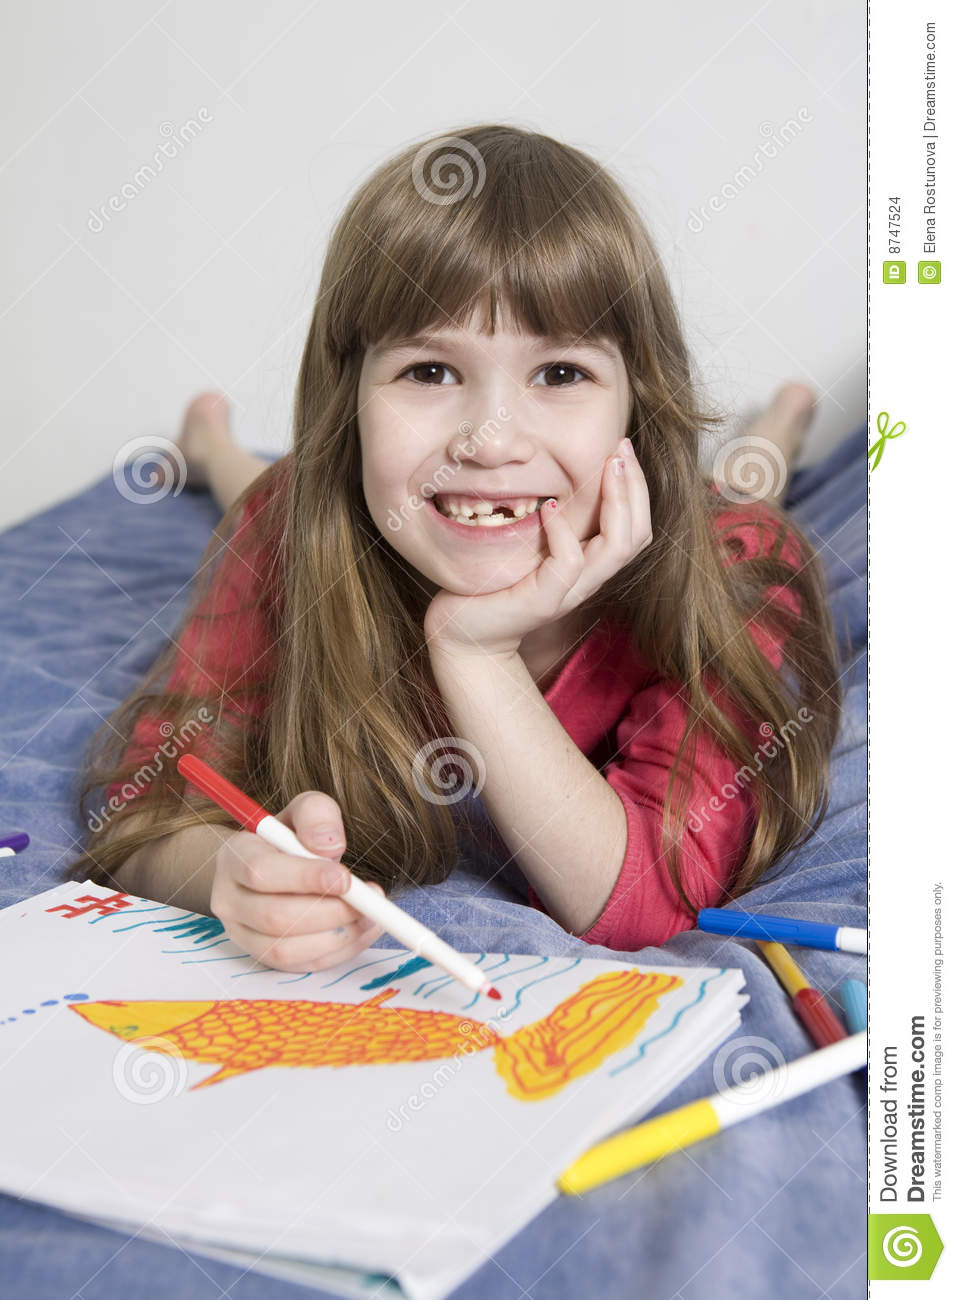 Cute smiling girl seven years old